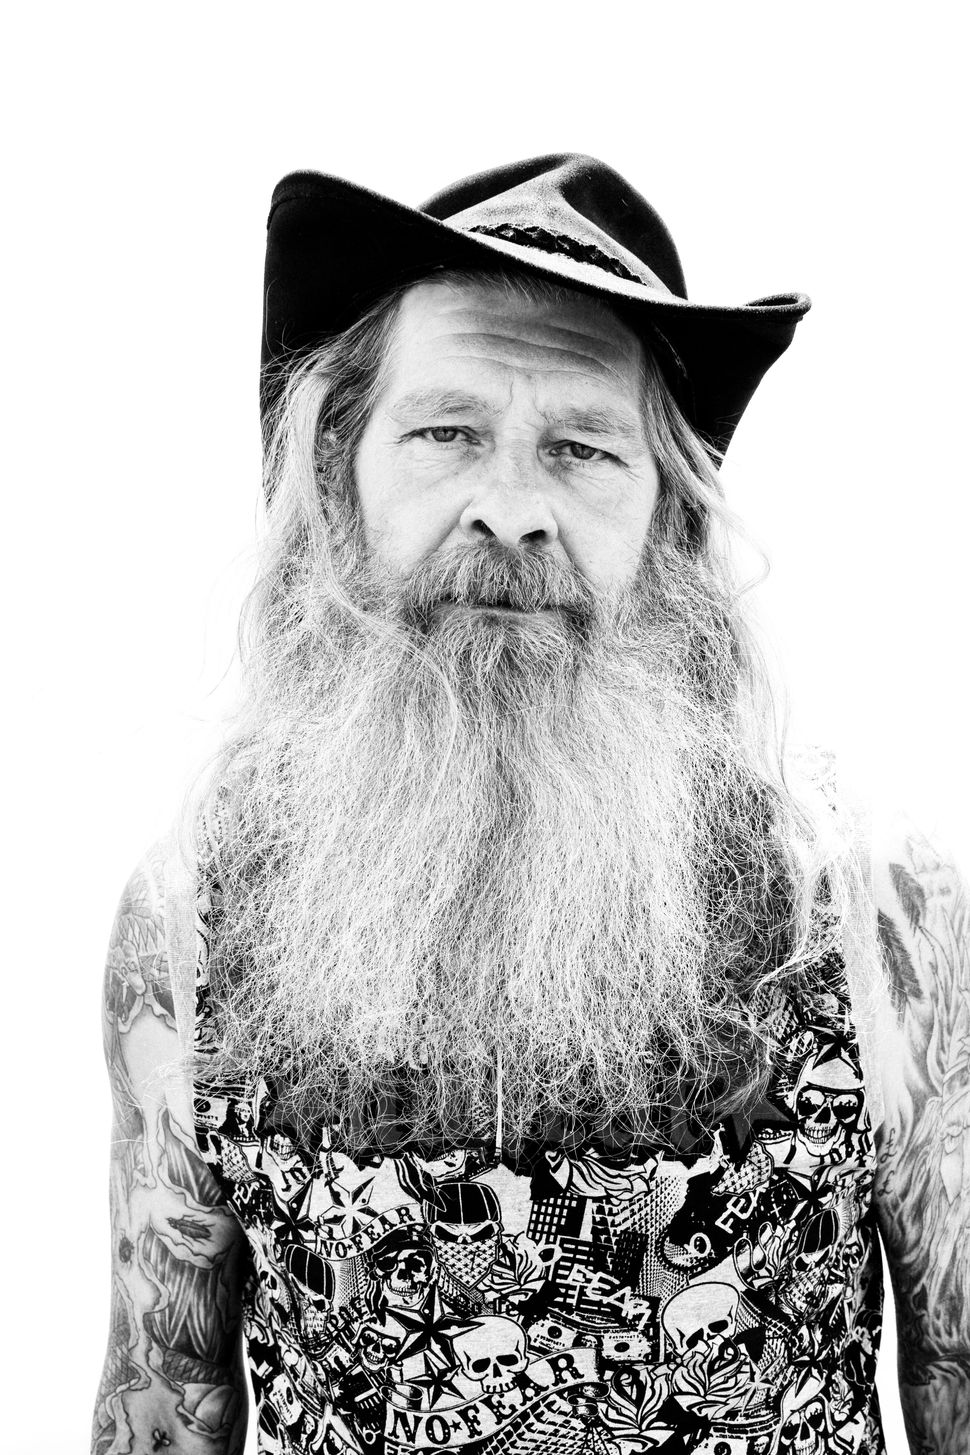 Portrait of an elderly man with a big beard, Download Festival, 2009, UK.